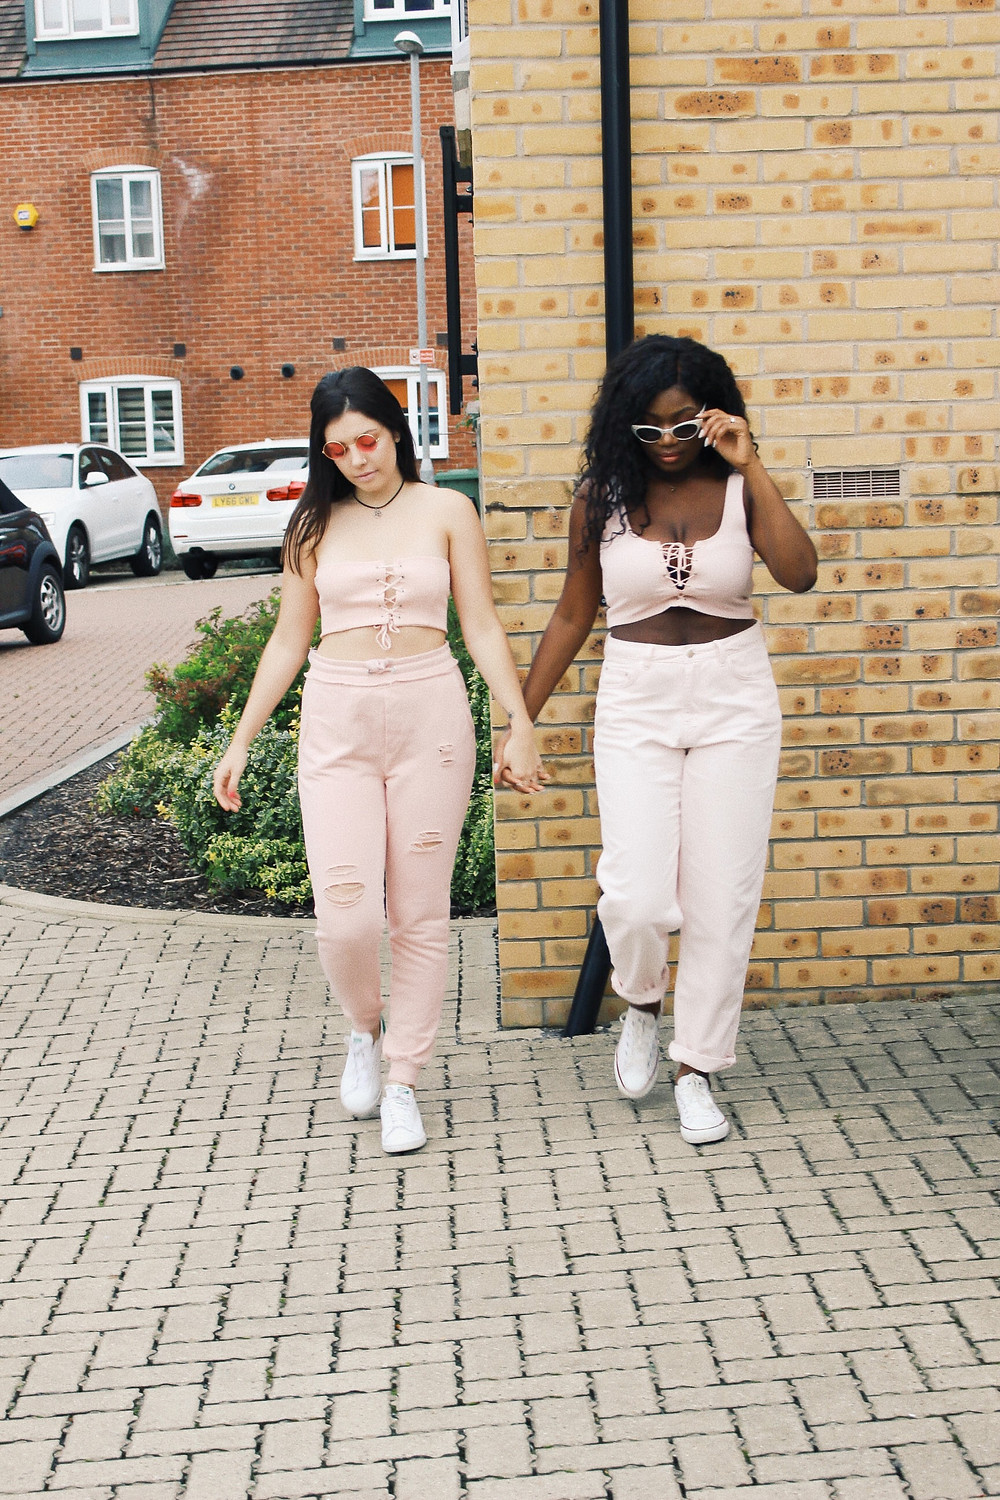 All pink blogger photoshoot - how to wear pink